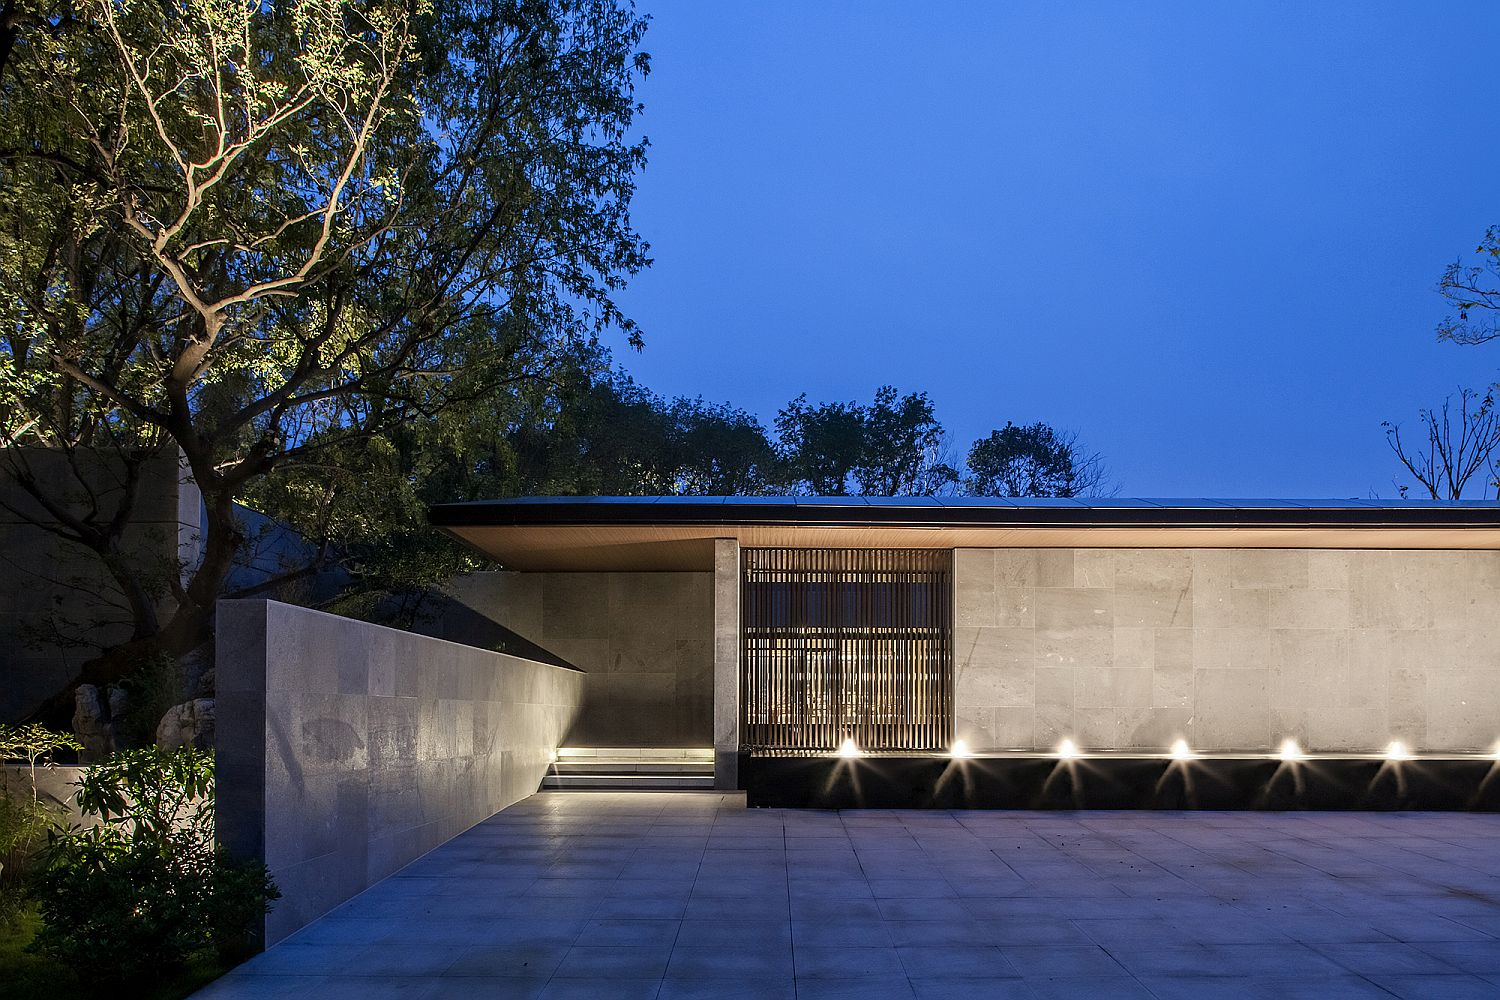 Simple and minimal design of the contemporary Tea House